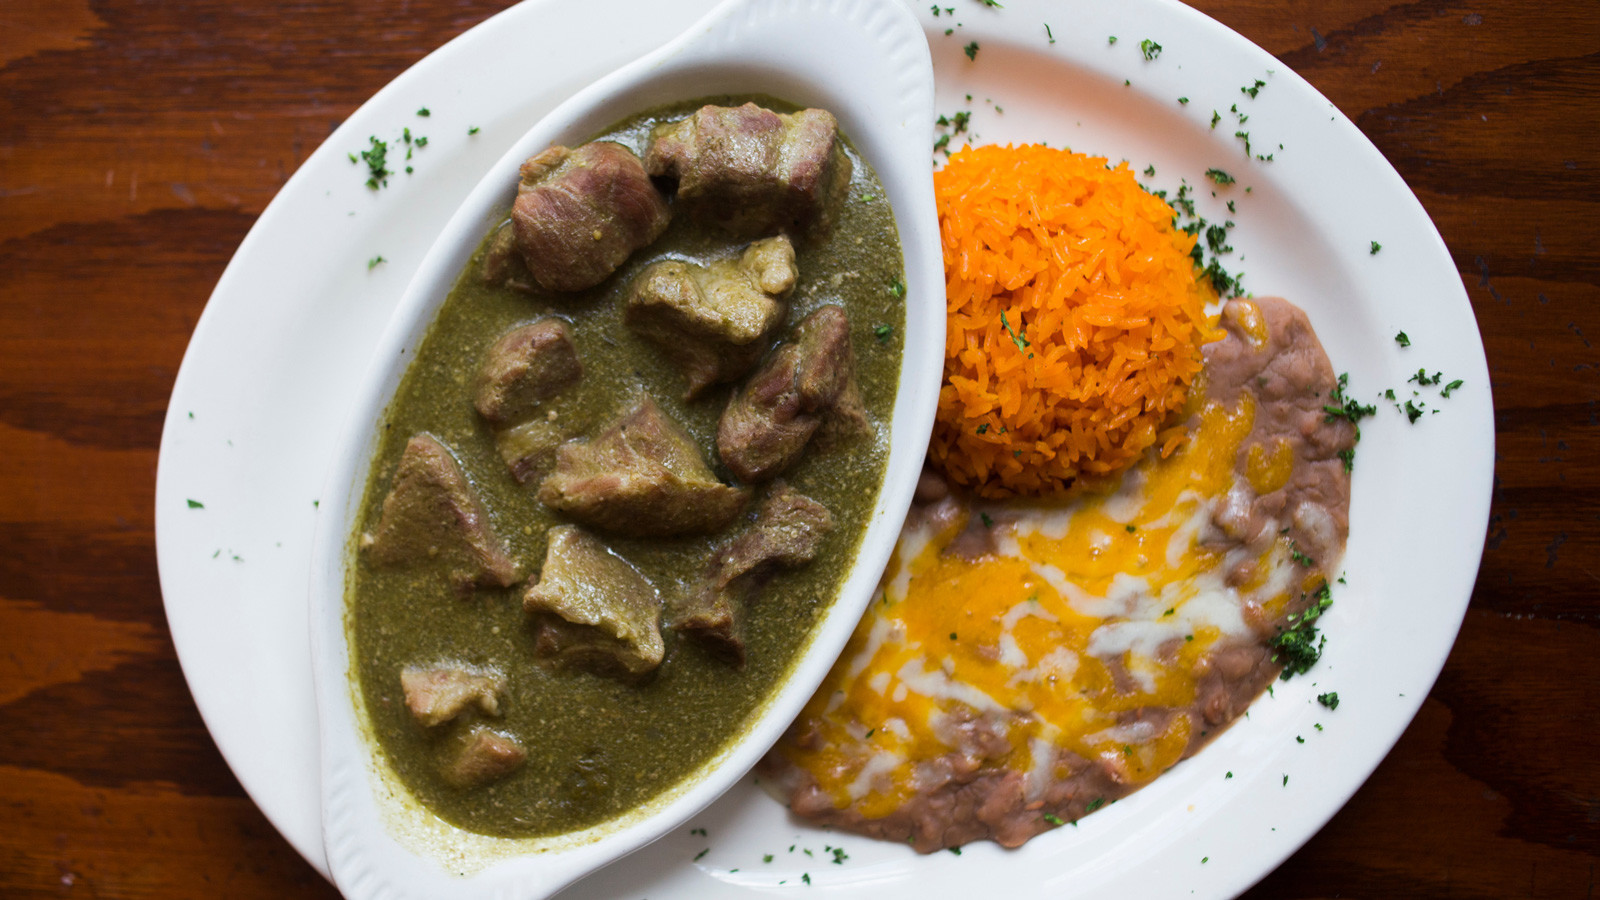 Chile verde dish at Tamayo Restaurant and Art Gallery in Los Angeles.